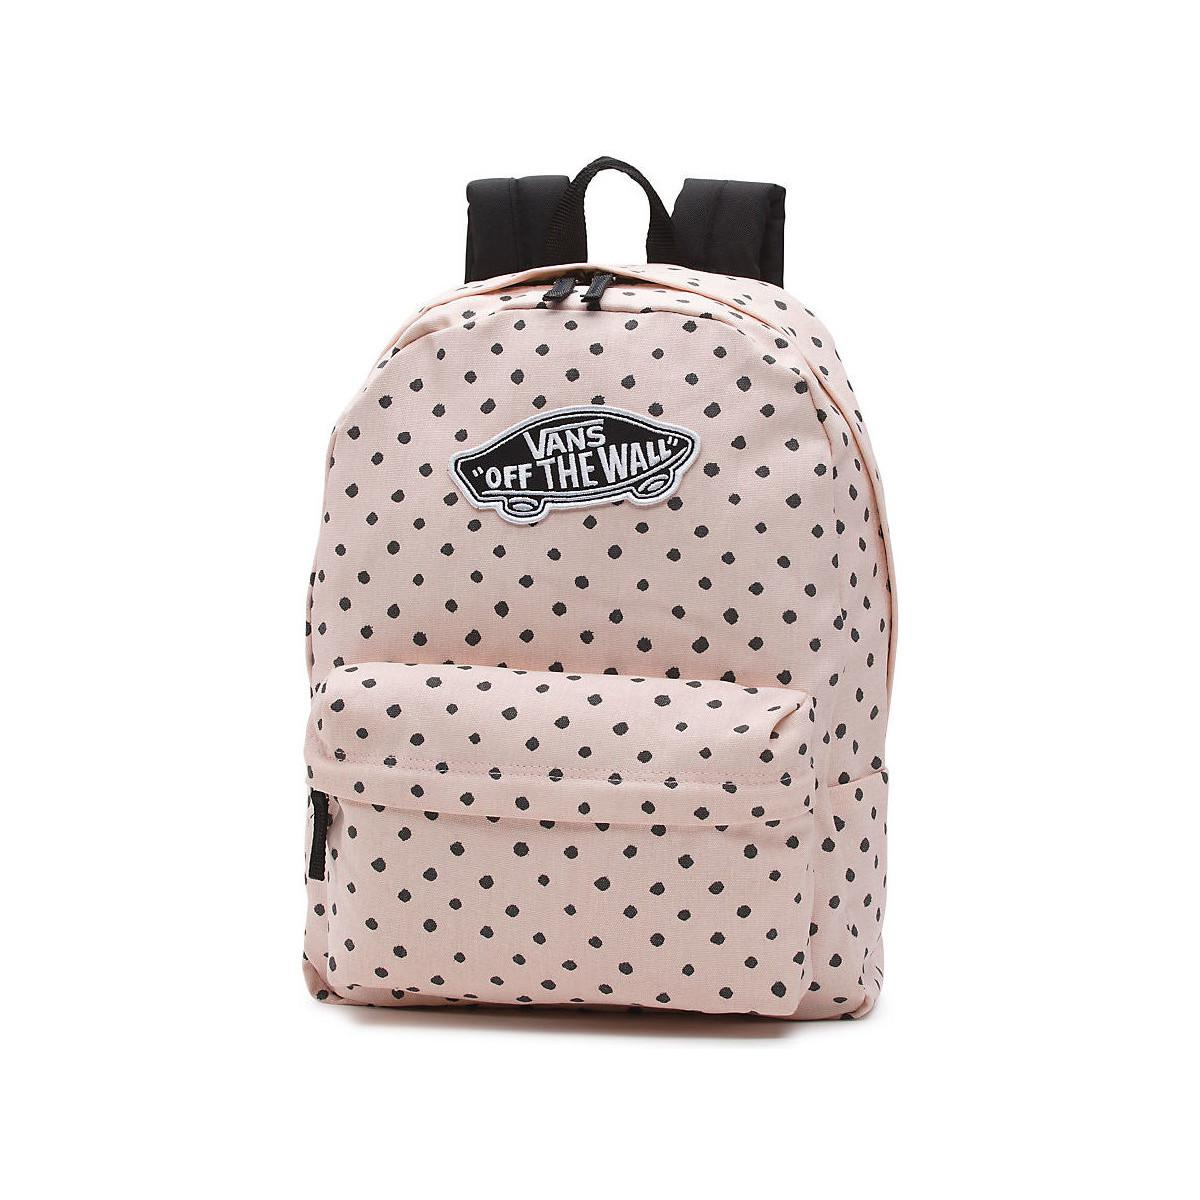 Vans Mochila Realm Backpack Women s Backpack In Pink in Pink - Lyst 7f128b3e30c